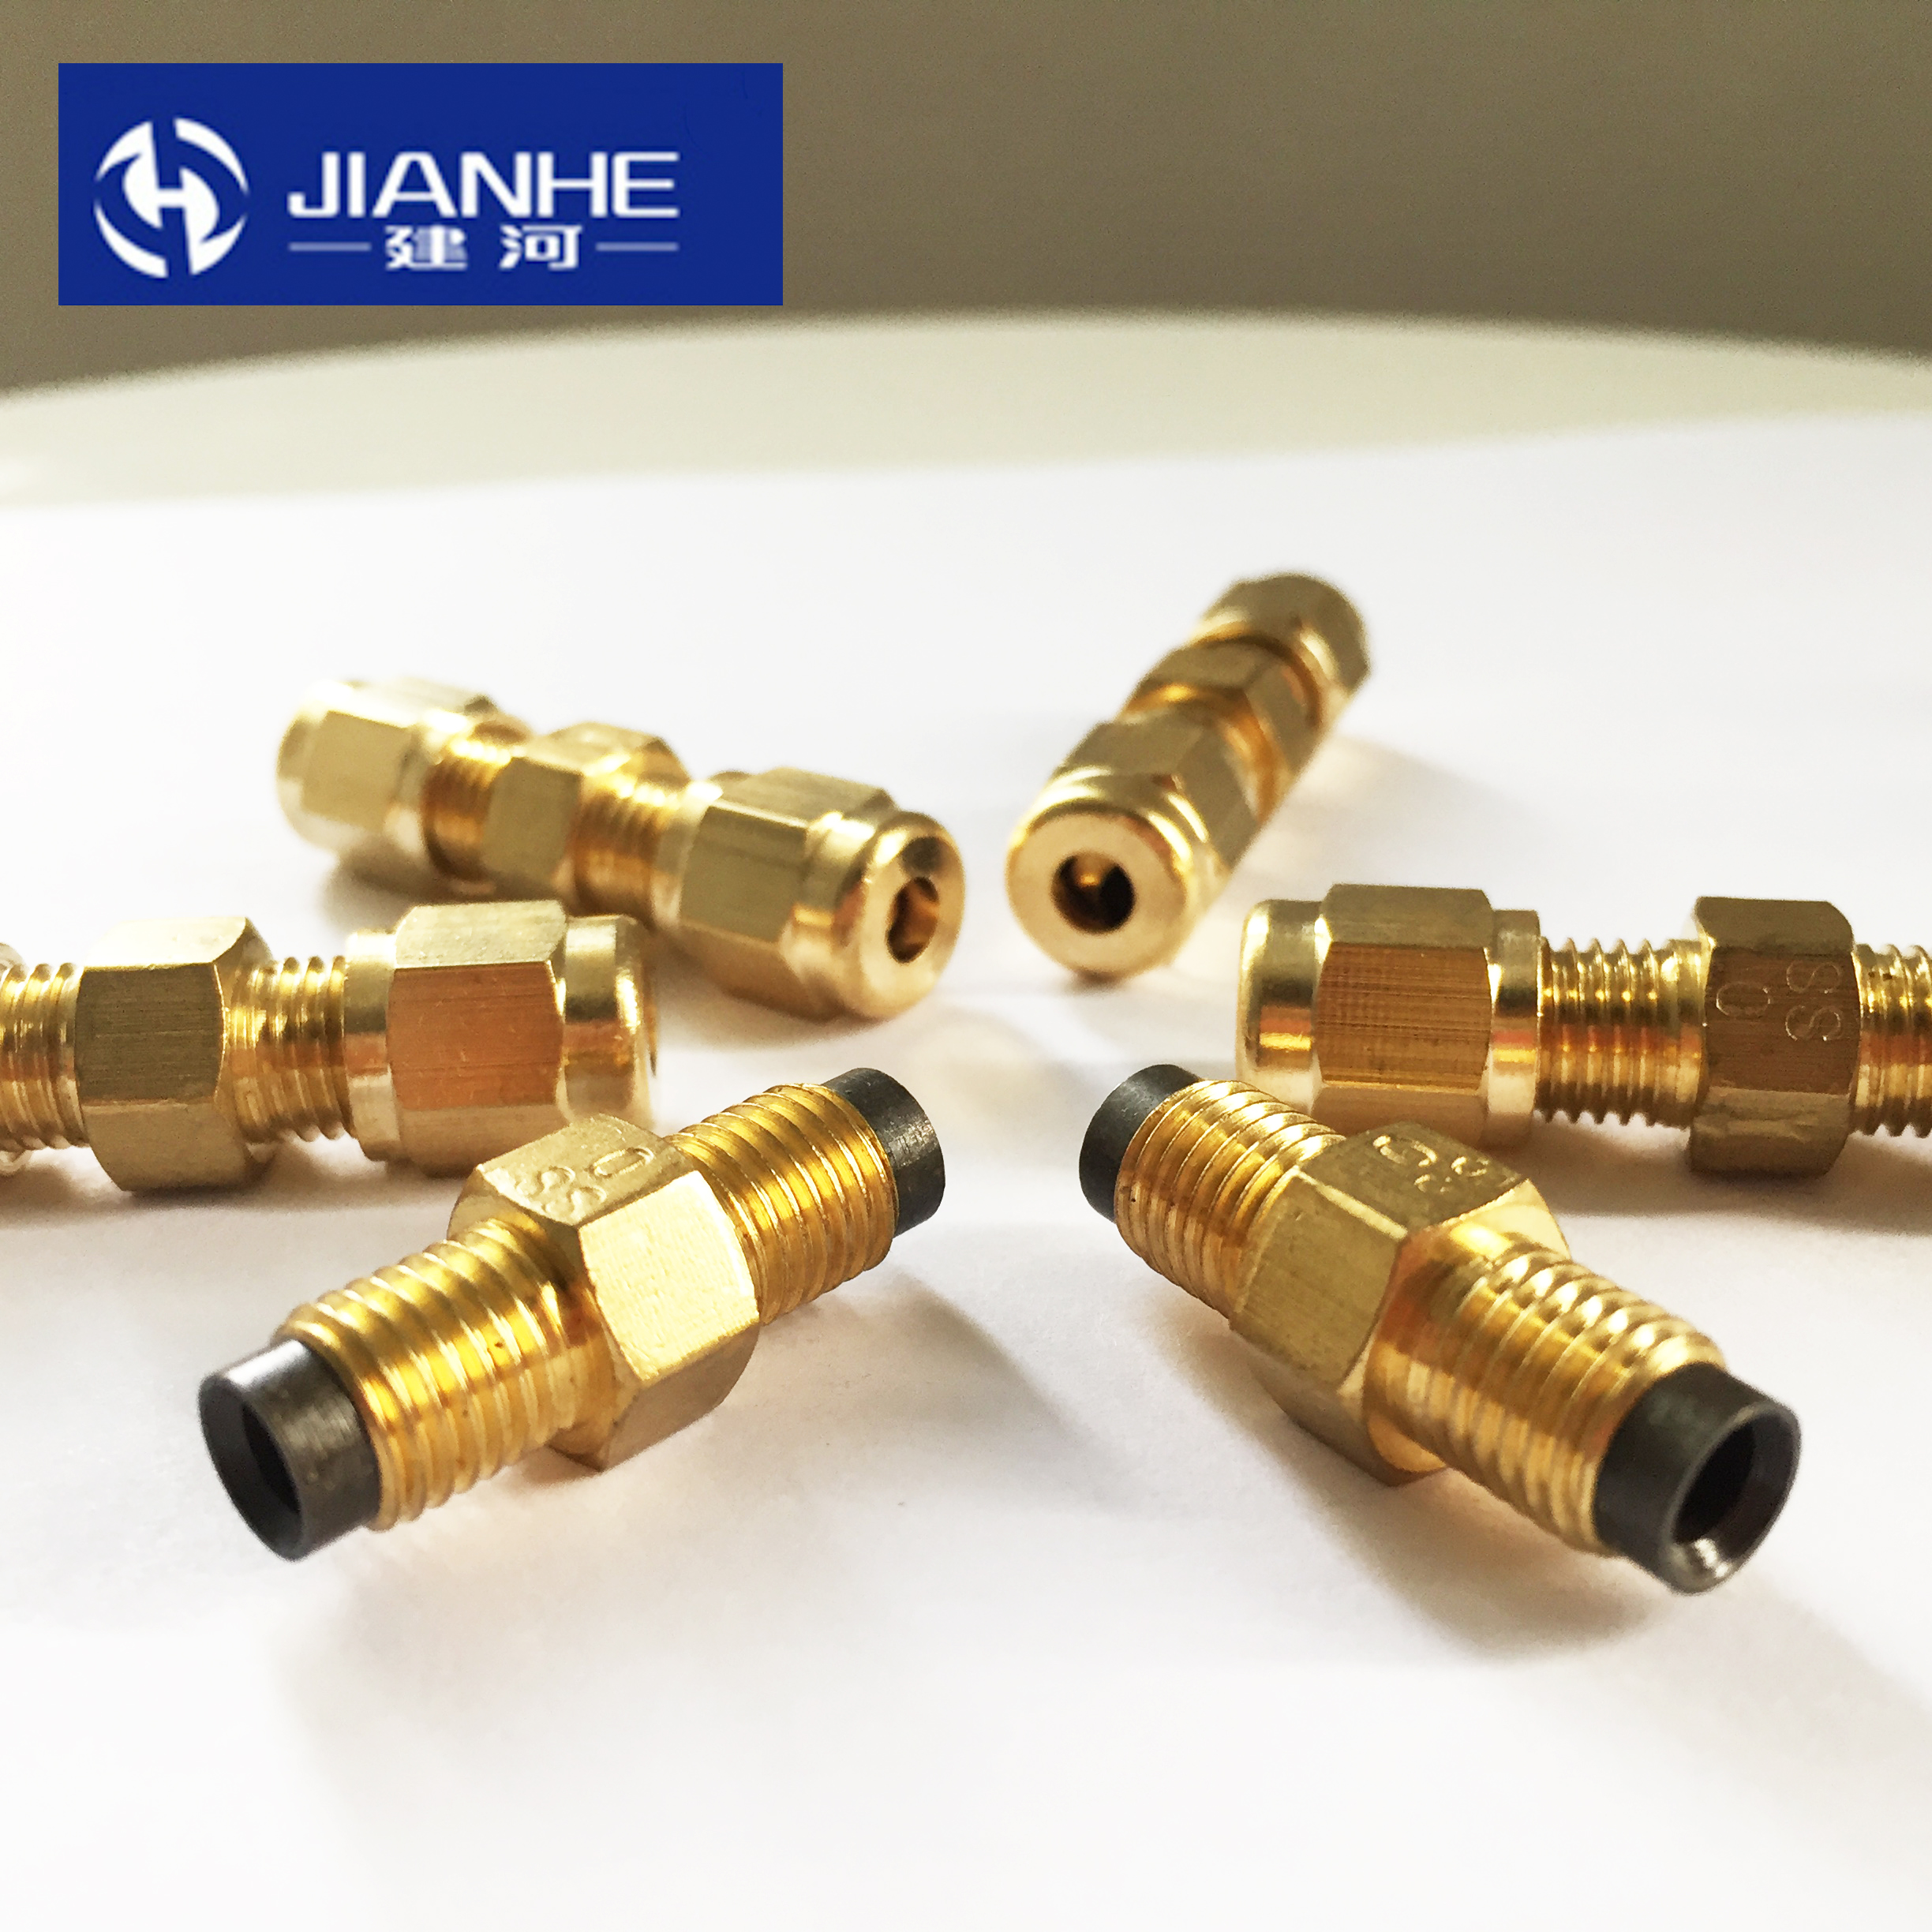 SS Type Brass Resistance Oil Flow Metering Unit Oil Distributor Separator Valve/divider DPC For Centralized Lubrication System